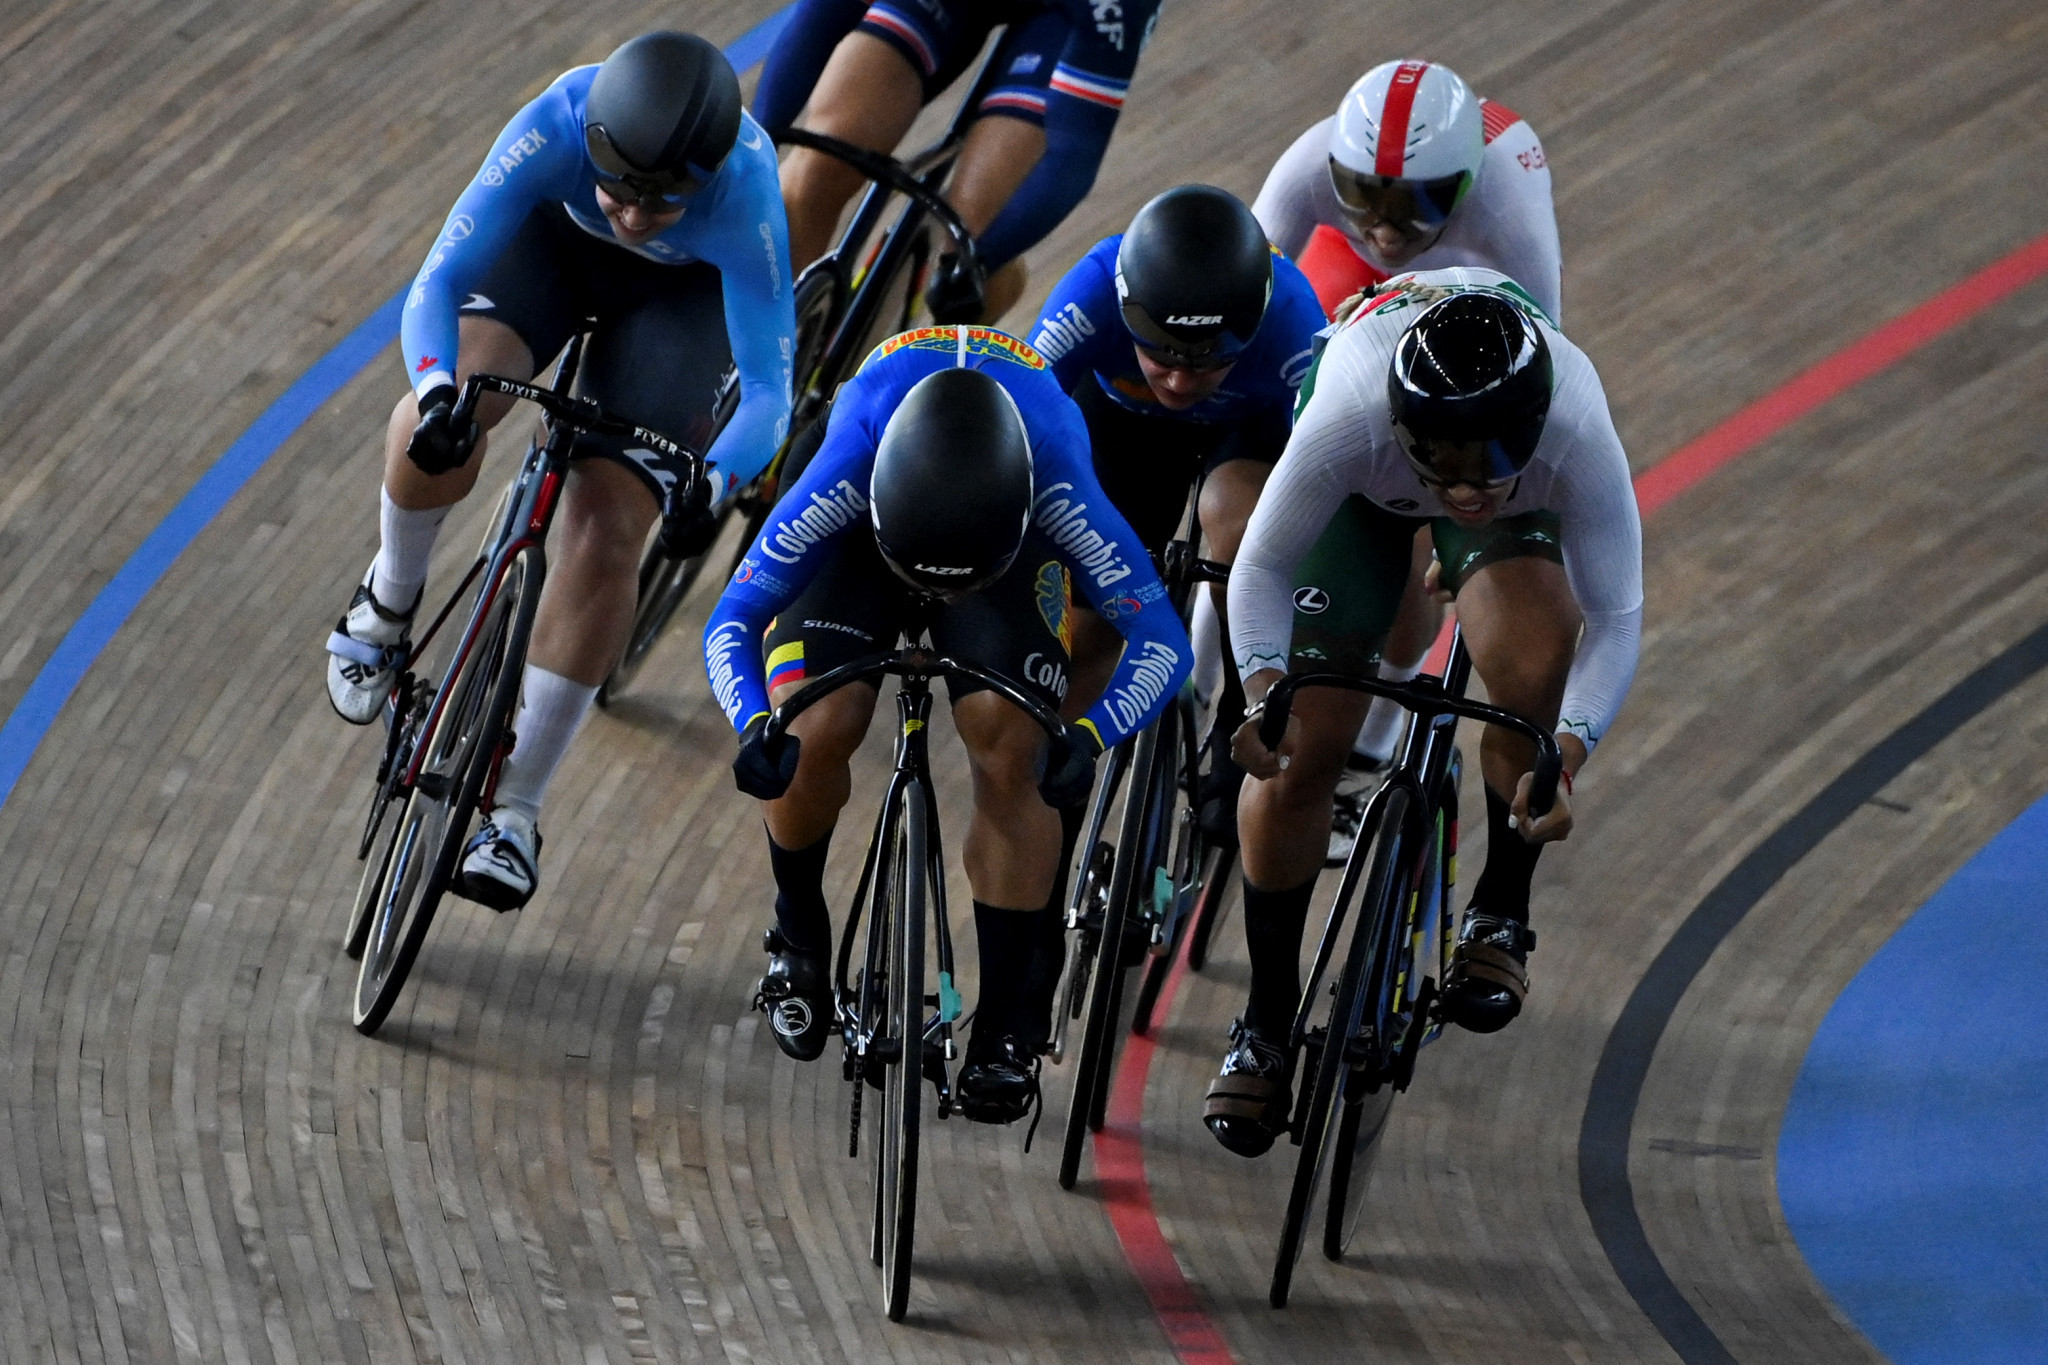 Bayona Pineda earns her third and Colombia's fifth gold on final day of UCI Track Cycling Nations Cup